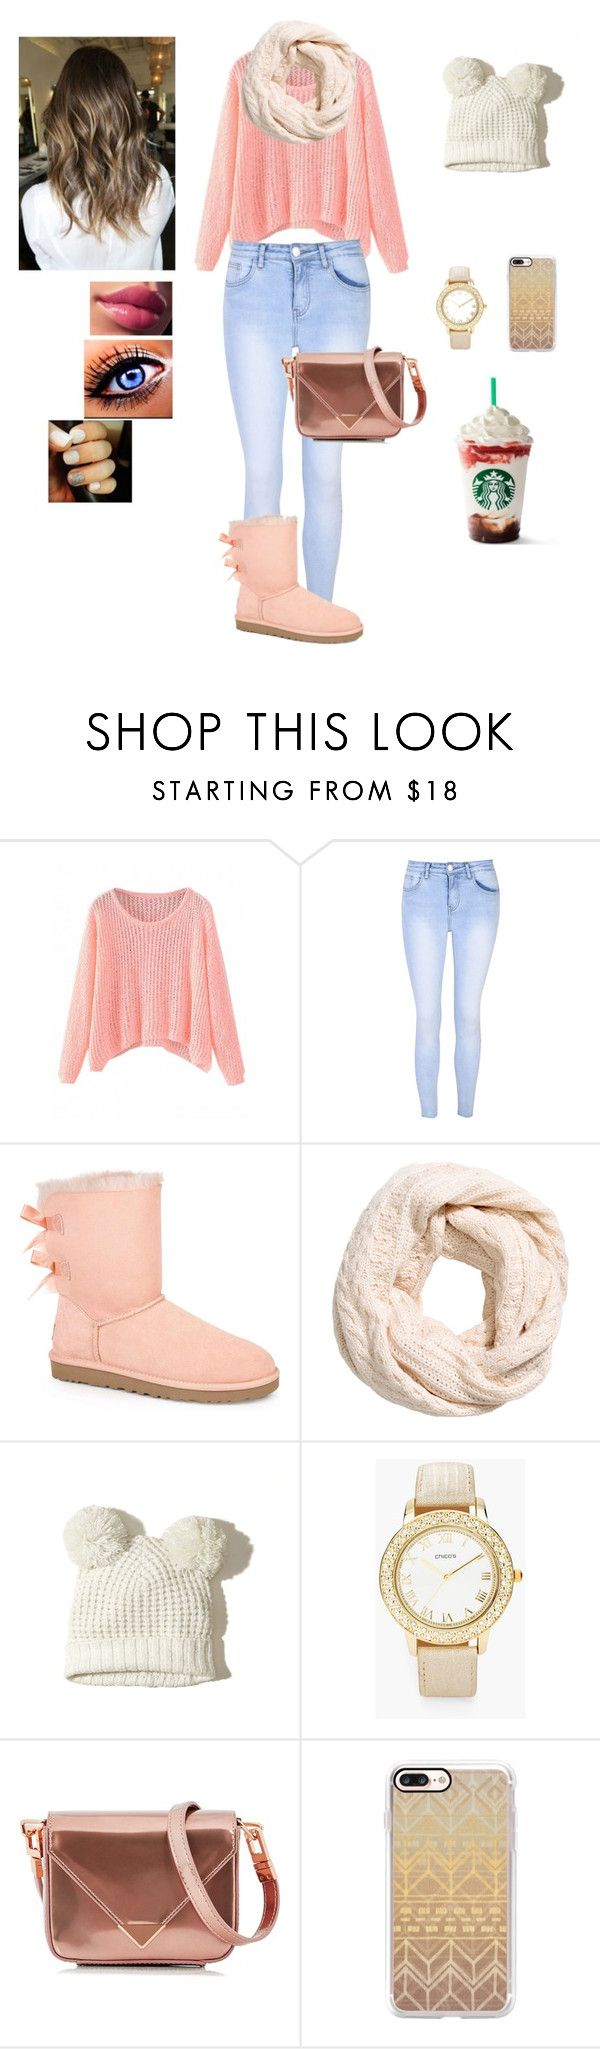 """seasonal"" by official-bria-j ❤ liked on Polyvore featuring Glamorous, UGG Australia, Hollister Co., Chico's, Alexander Wang and Casetify"